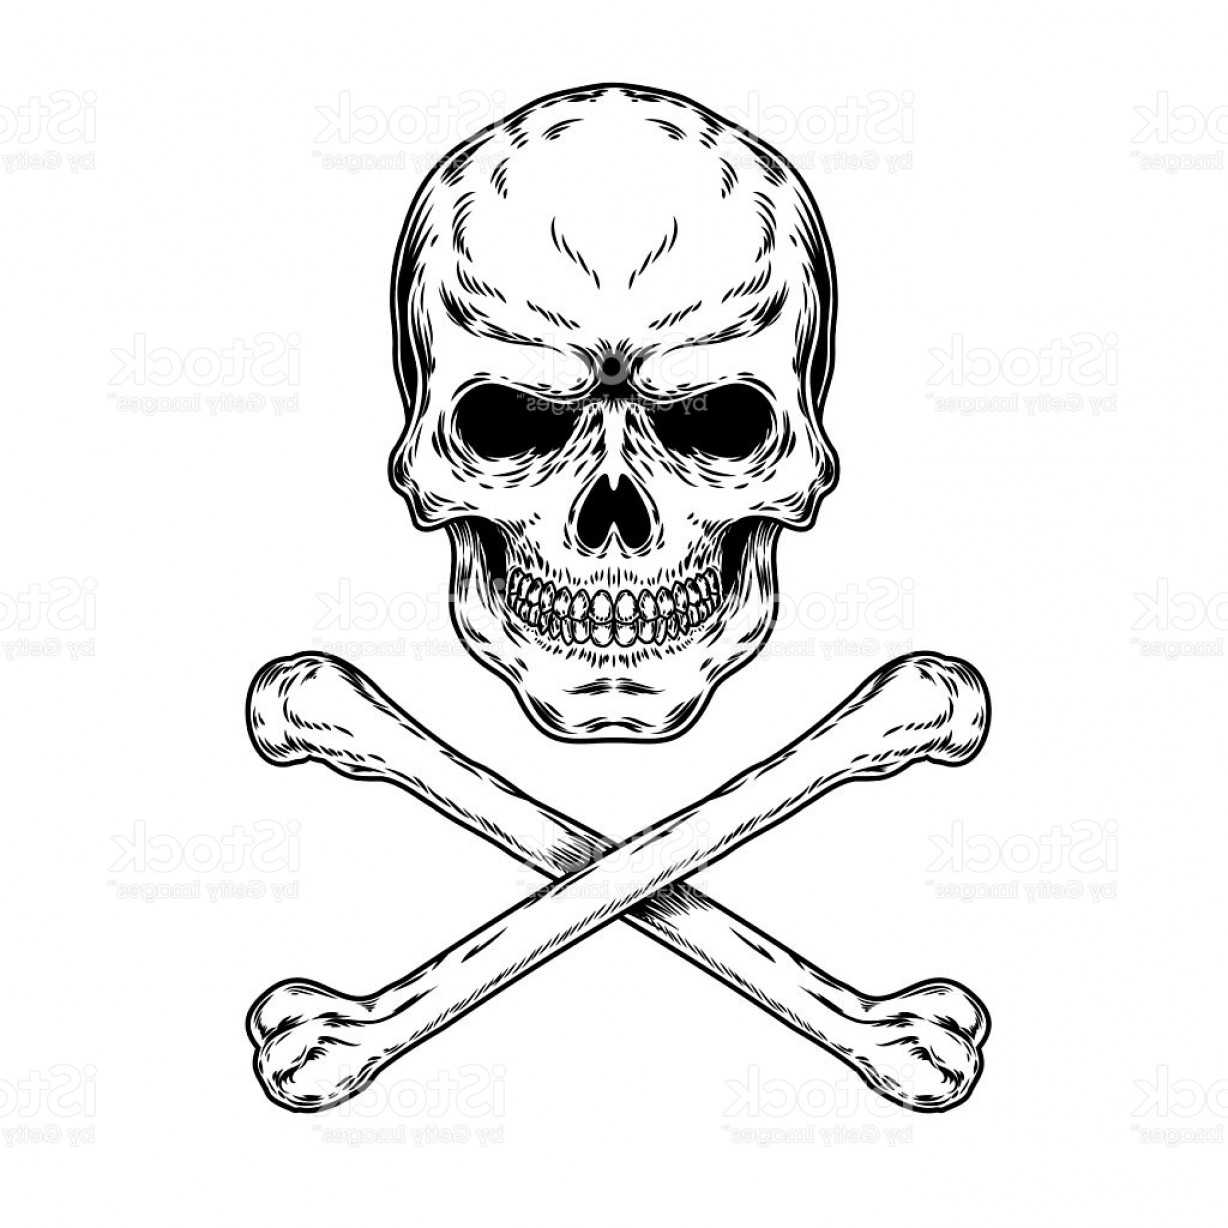 Skull ND Crossbones Vector: Vector Illustration Of A Skull And Crossbones Gm